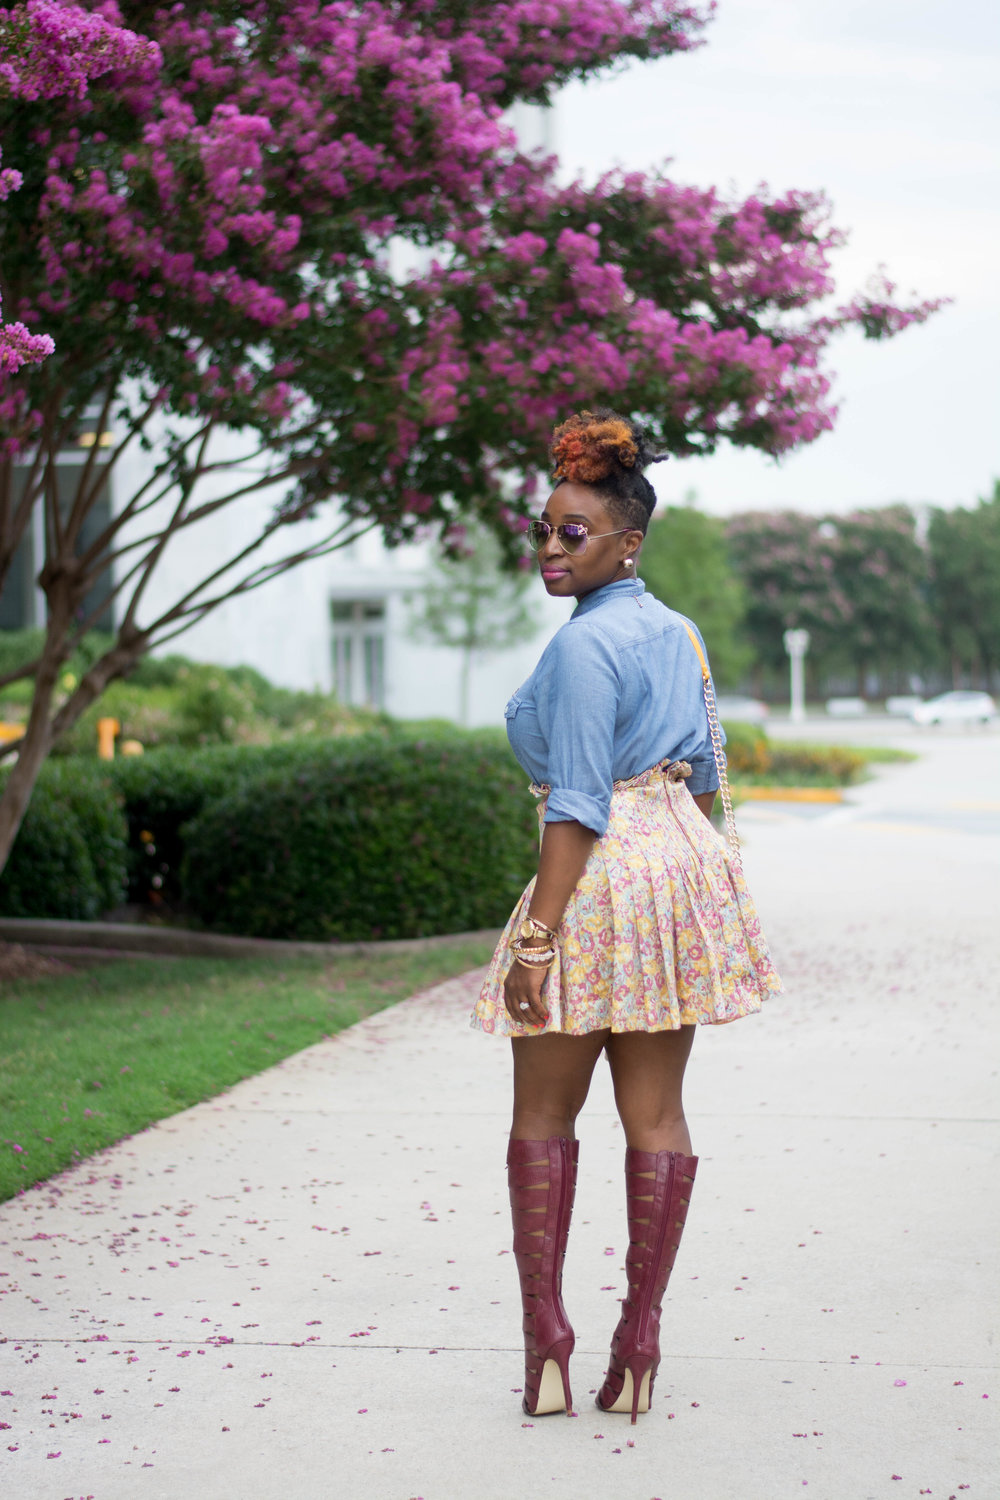 Atlanta stylist wearing a chambray top and floral mini skirt with tall Bordeaux lace up boots